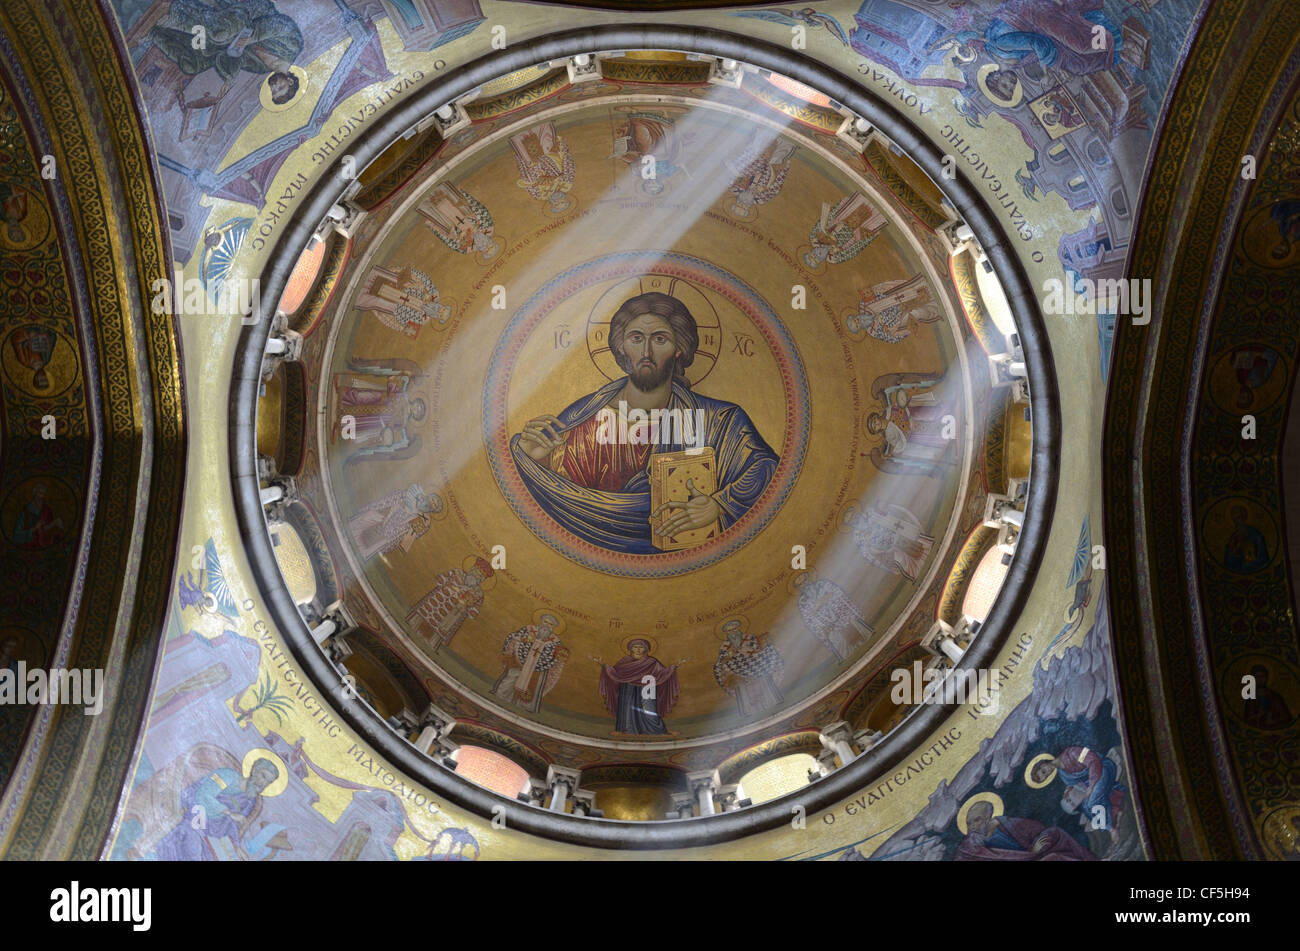 The dome of the Catholicon which is the church at the center of the Church of the Holy Sepulchre in Jerusalem, Israel. - Stock Image